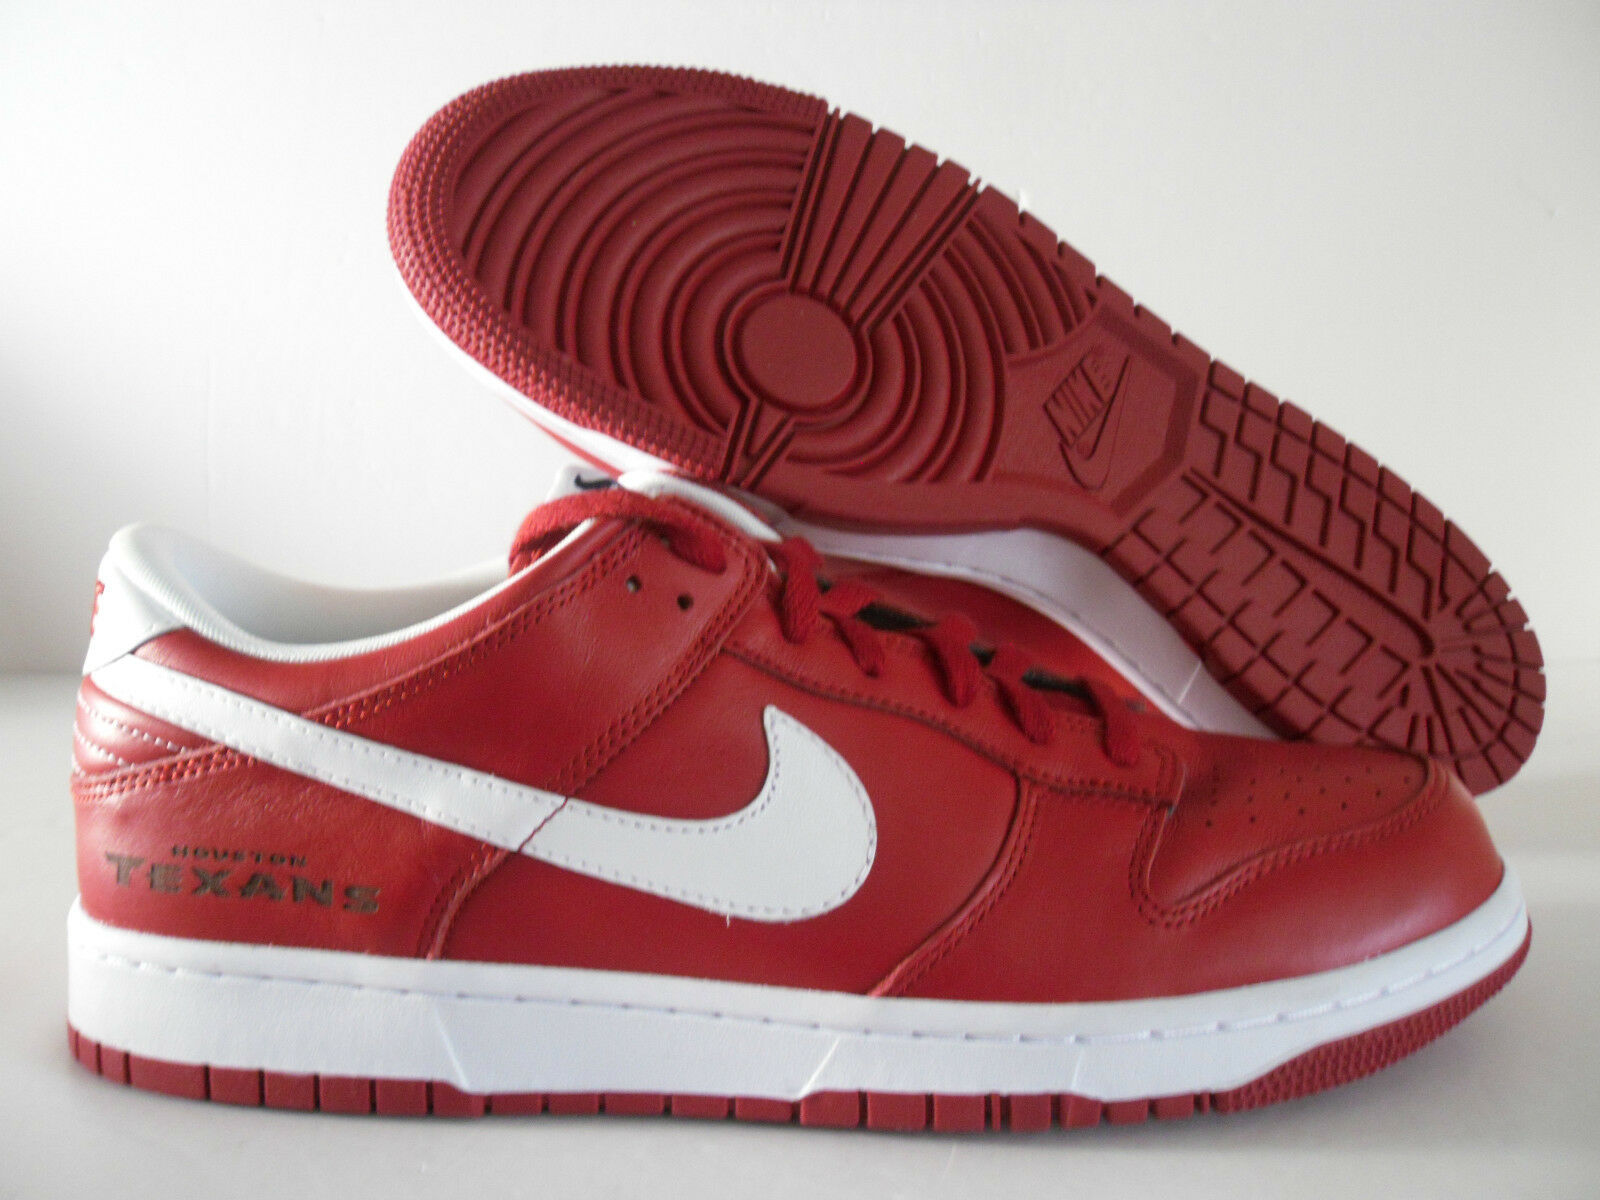 NIKE DUNK LOW iD NFL HOUSTON TEXANS RED SZ 12.5 [535081-901]